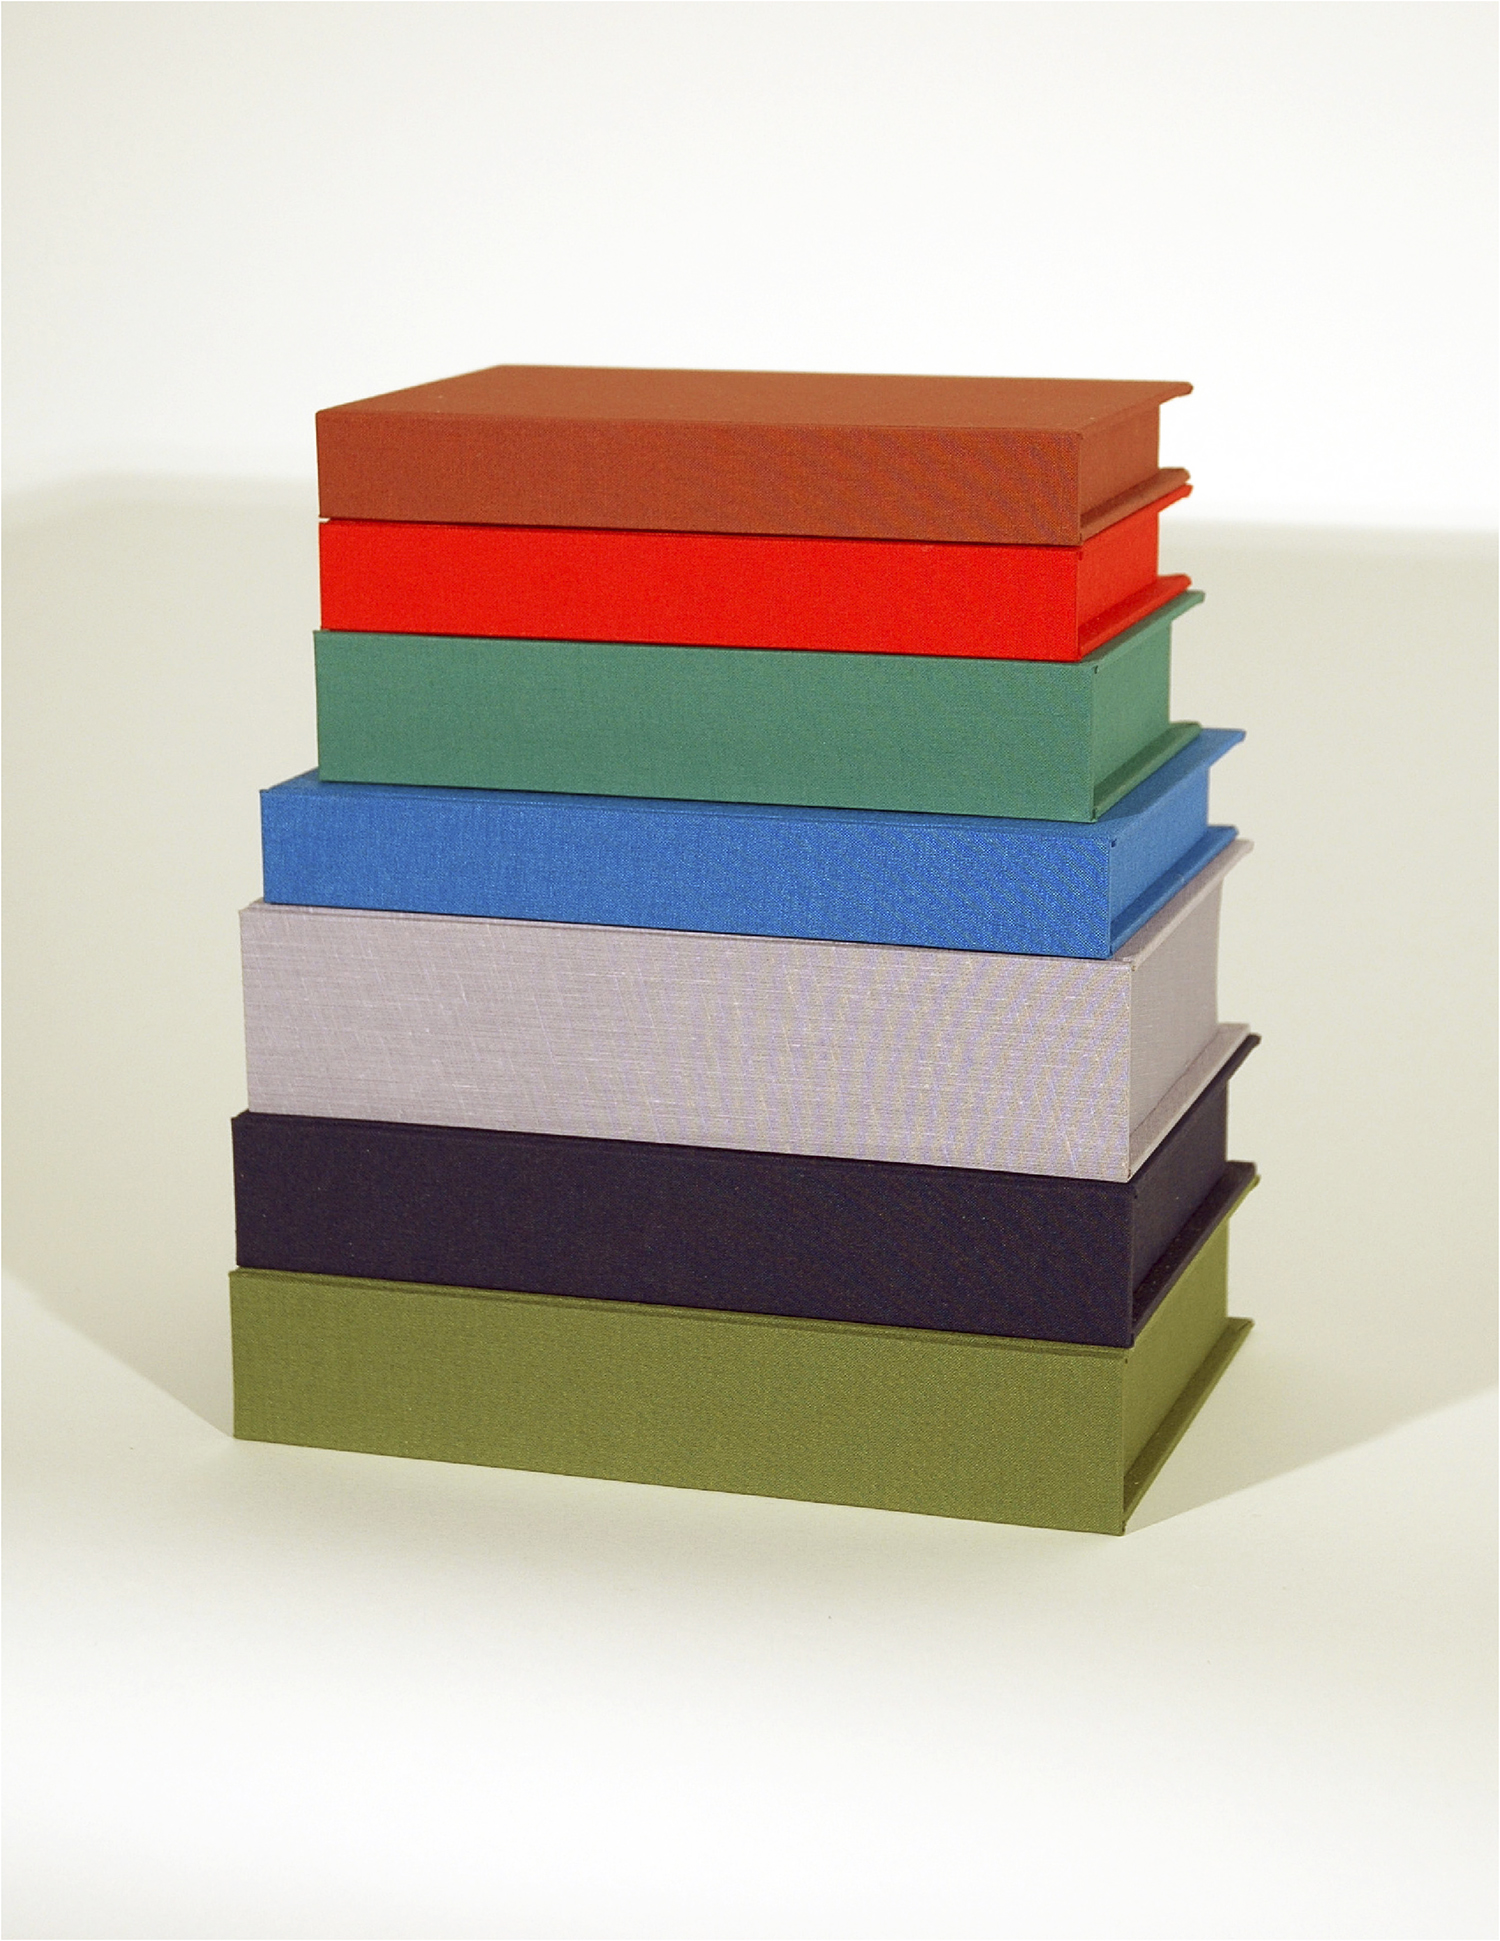 Gilbert: The Accidental Murderer's Monument; Bookbinding Board and Fabric with Entombed Books; Dimensions Variable; 2007